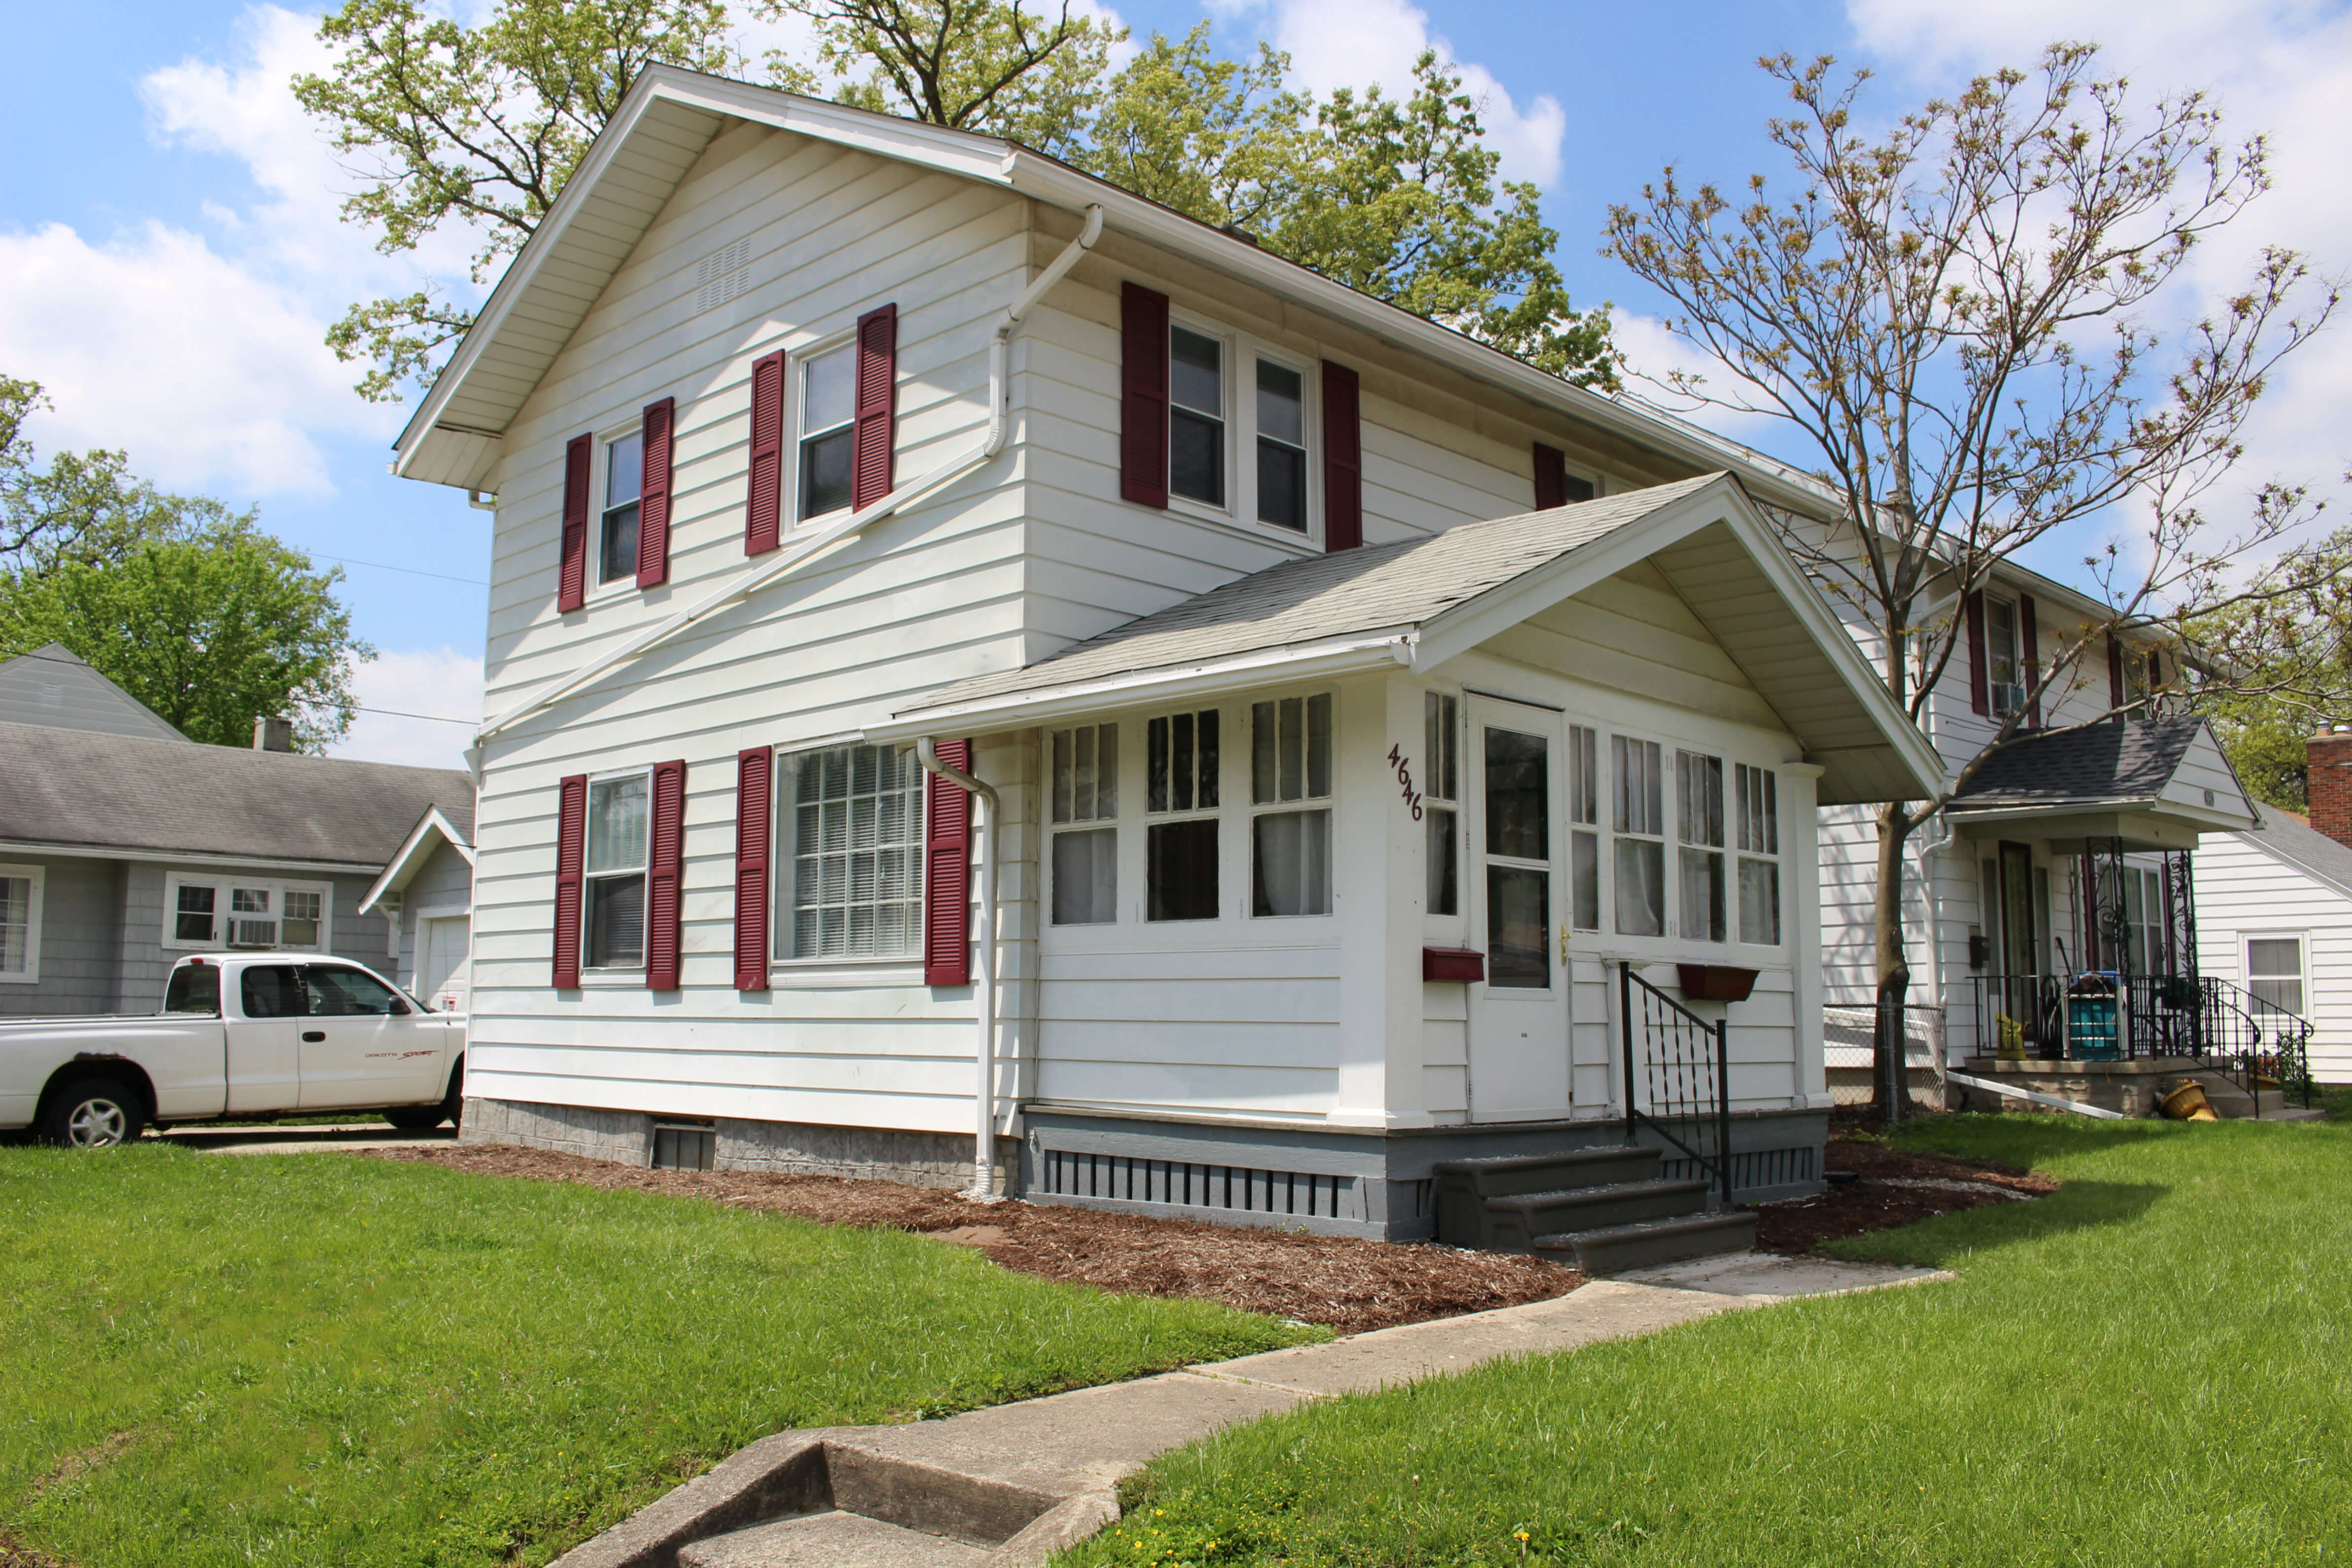 Nice 3 bed with style and space sold fort wayne listings for rent and rent to own free home Home furniture rental indiana